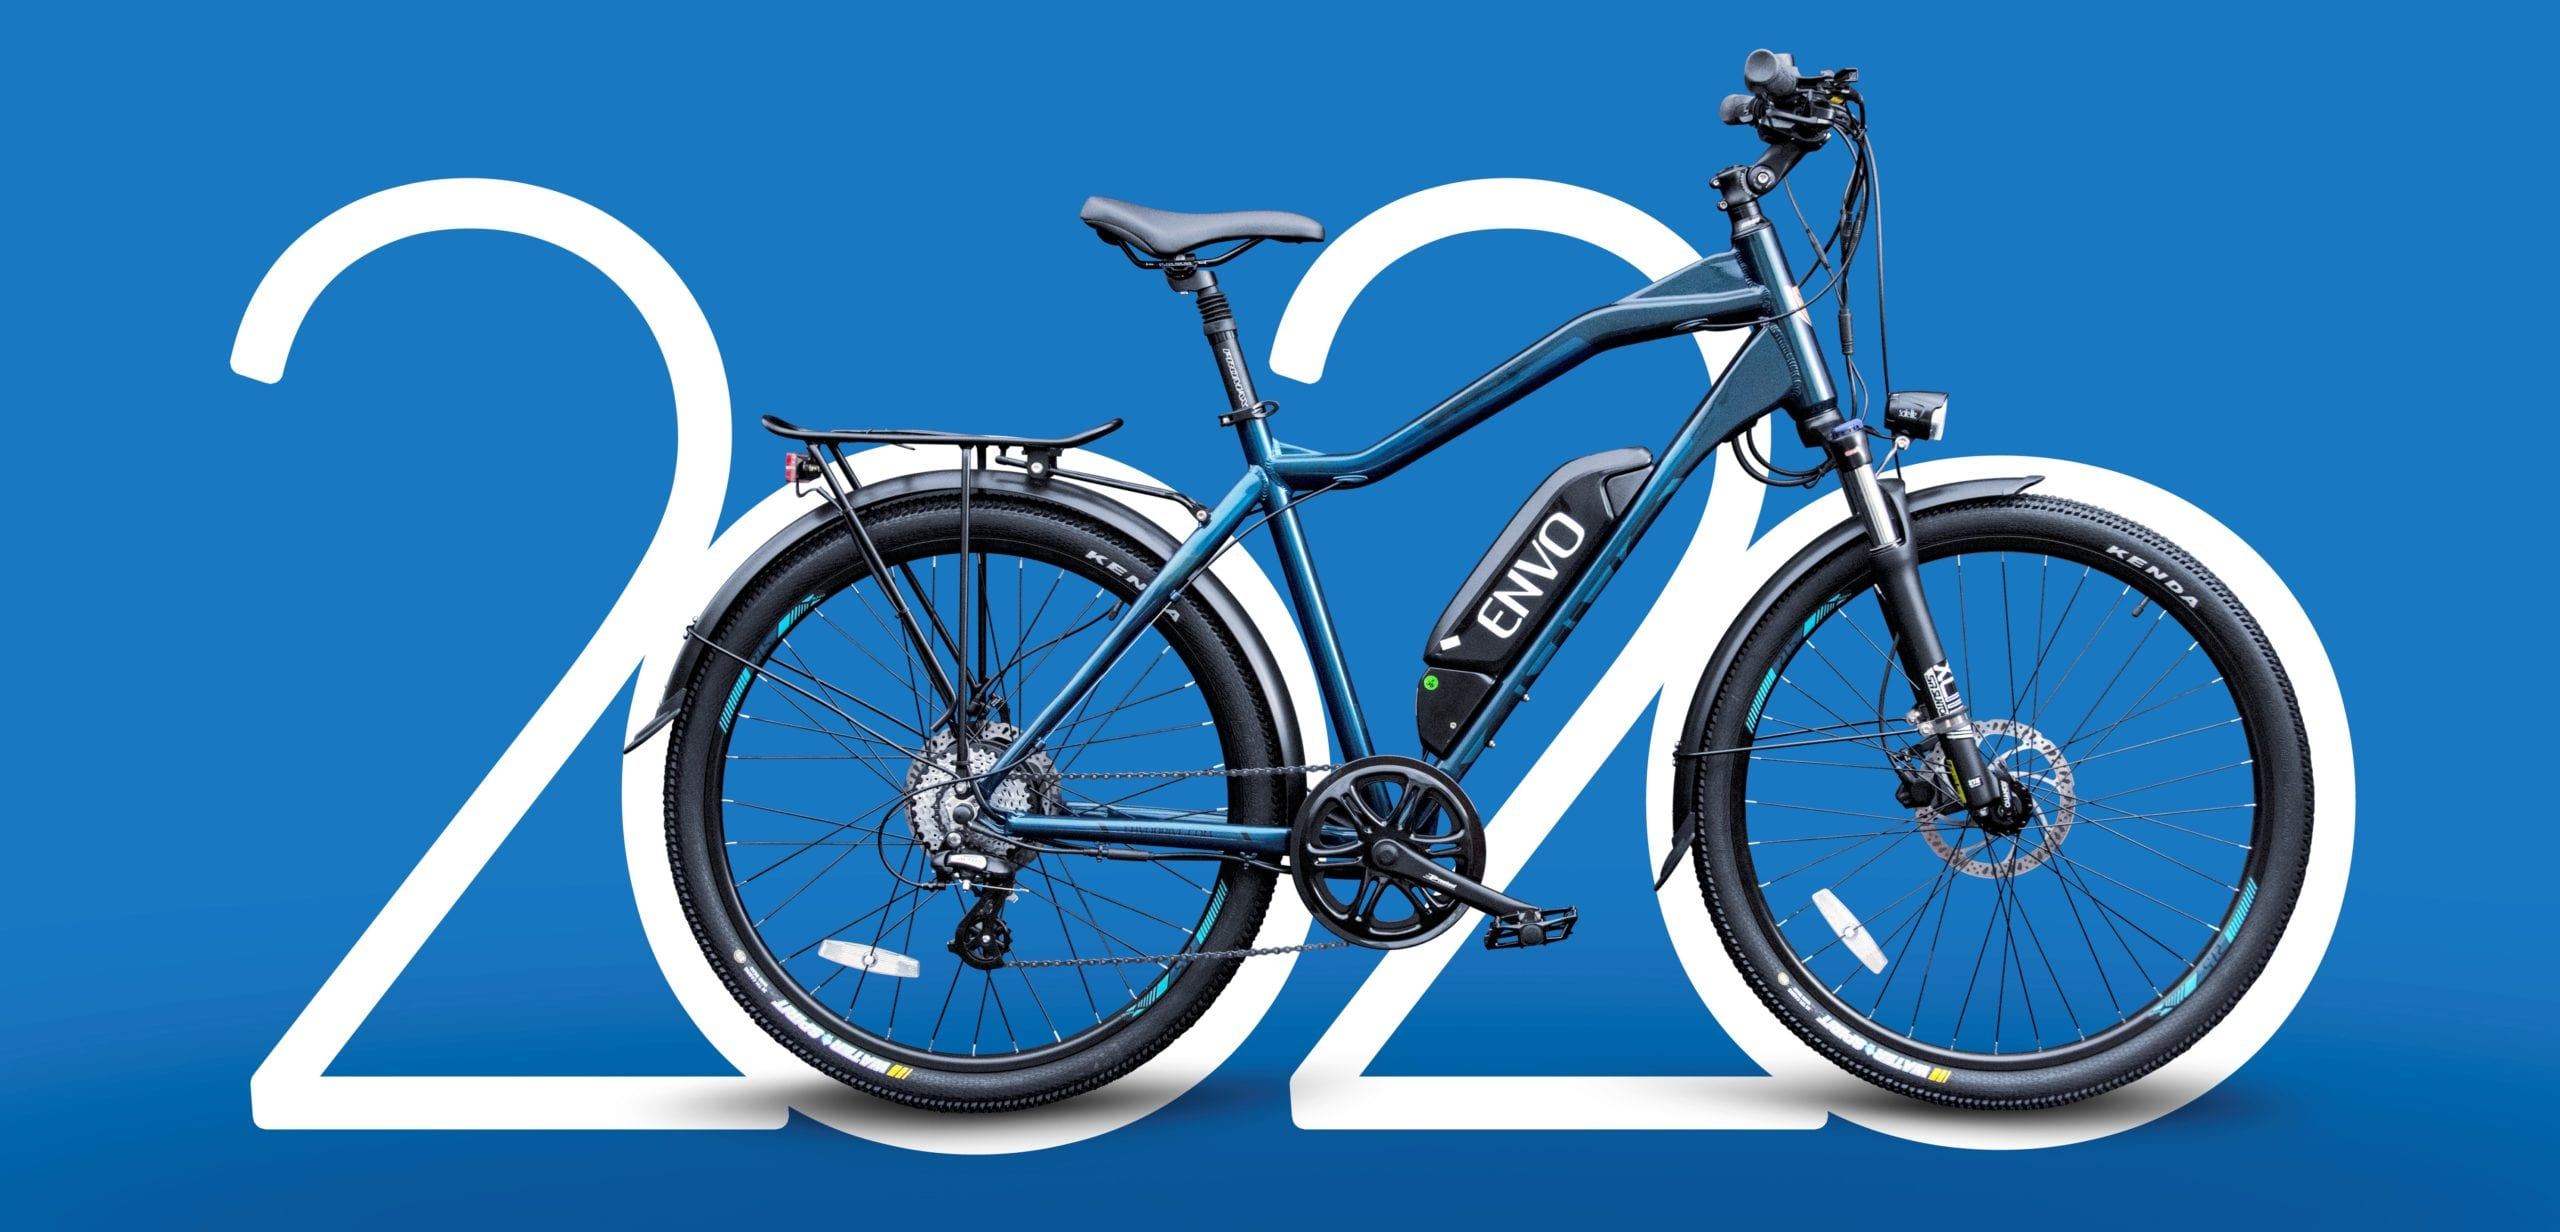 ENVO 20202 electric bike